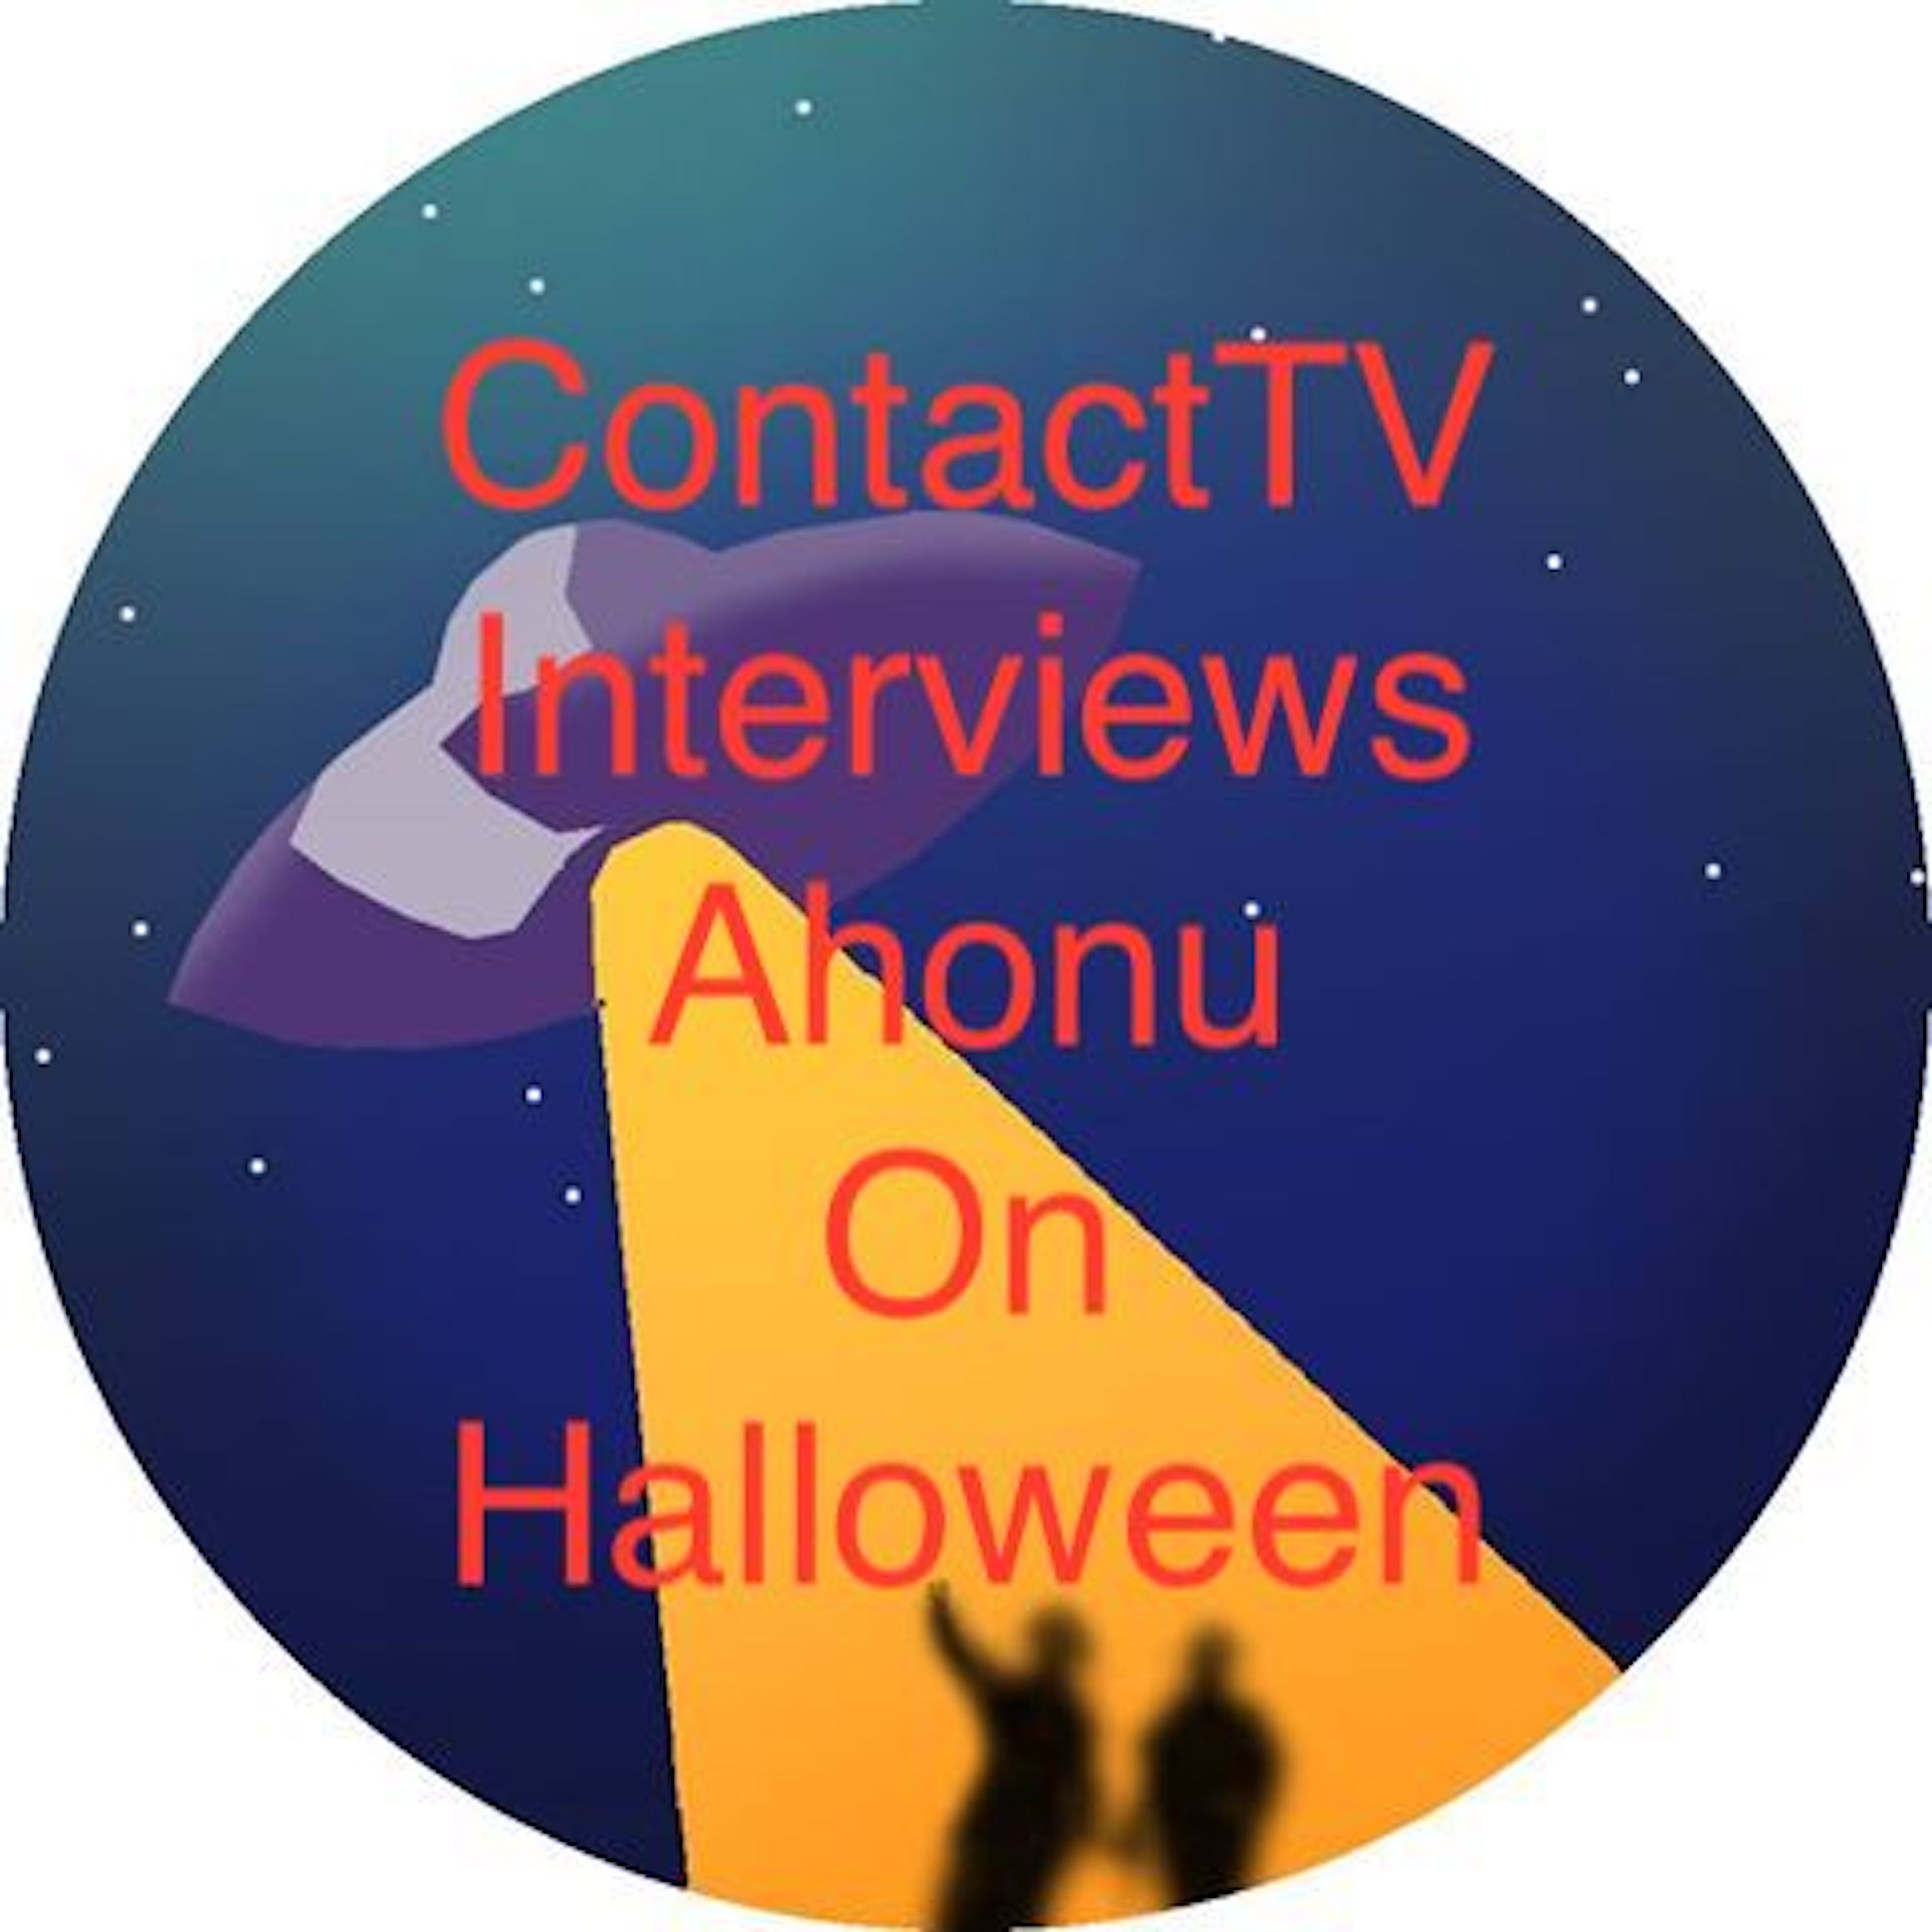 294: ContactTV Interview Ahonu about Halloween